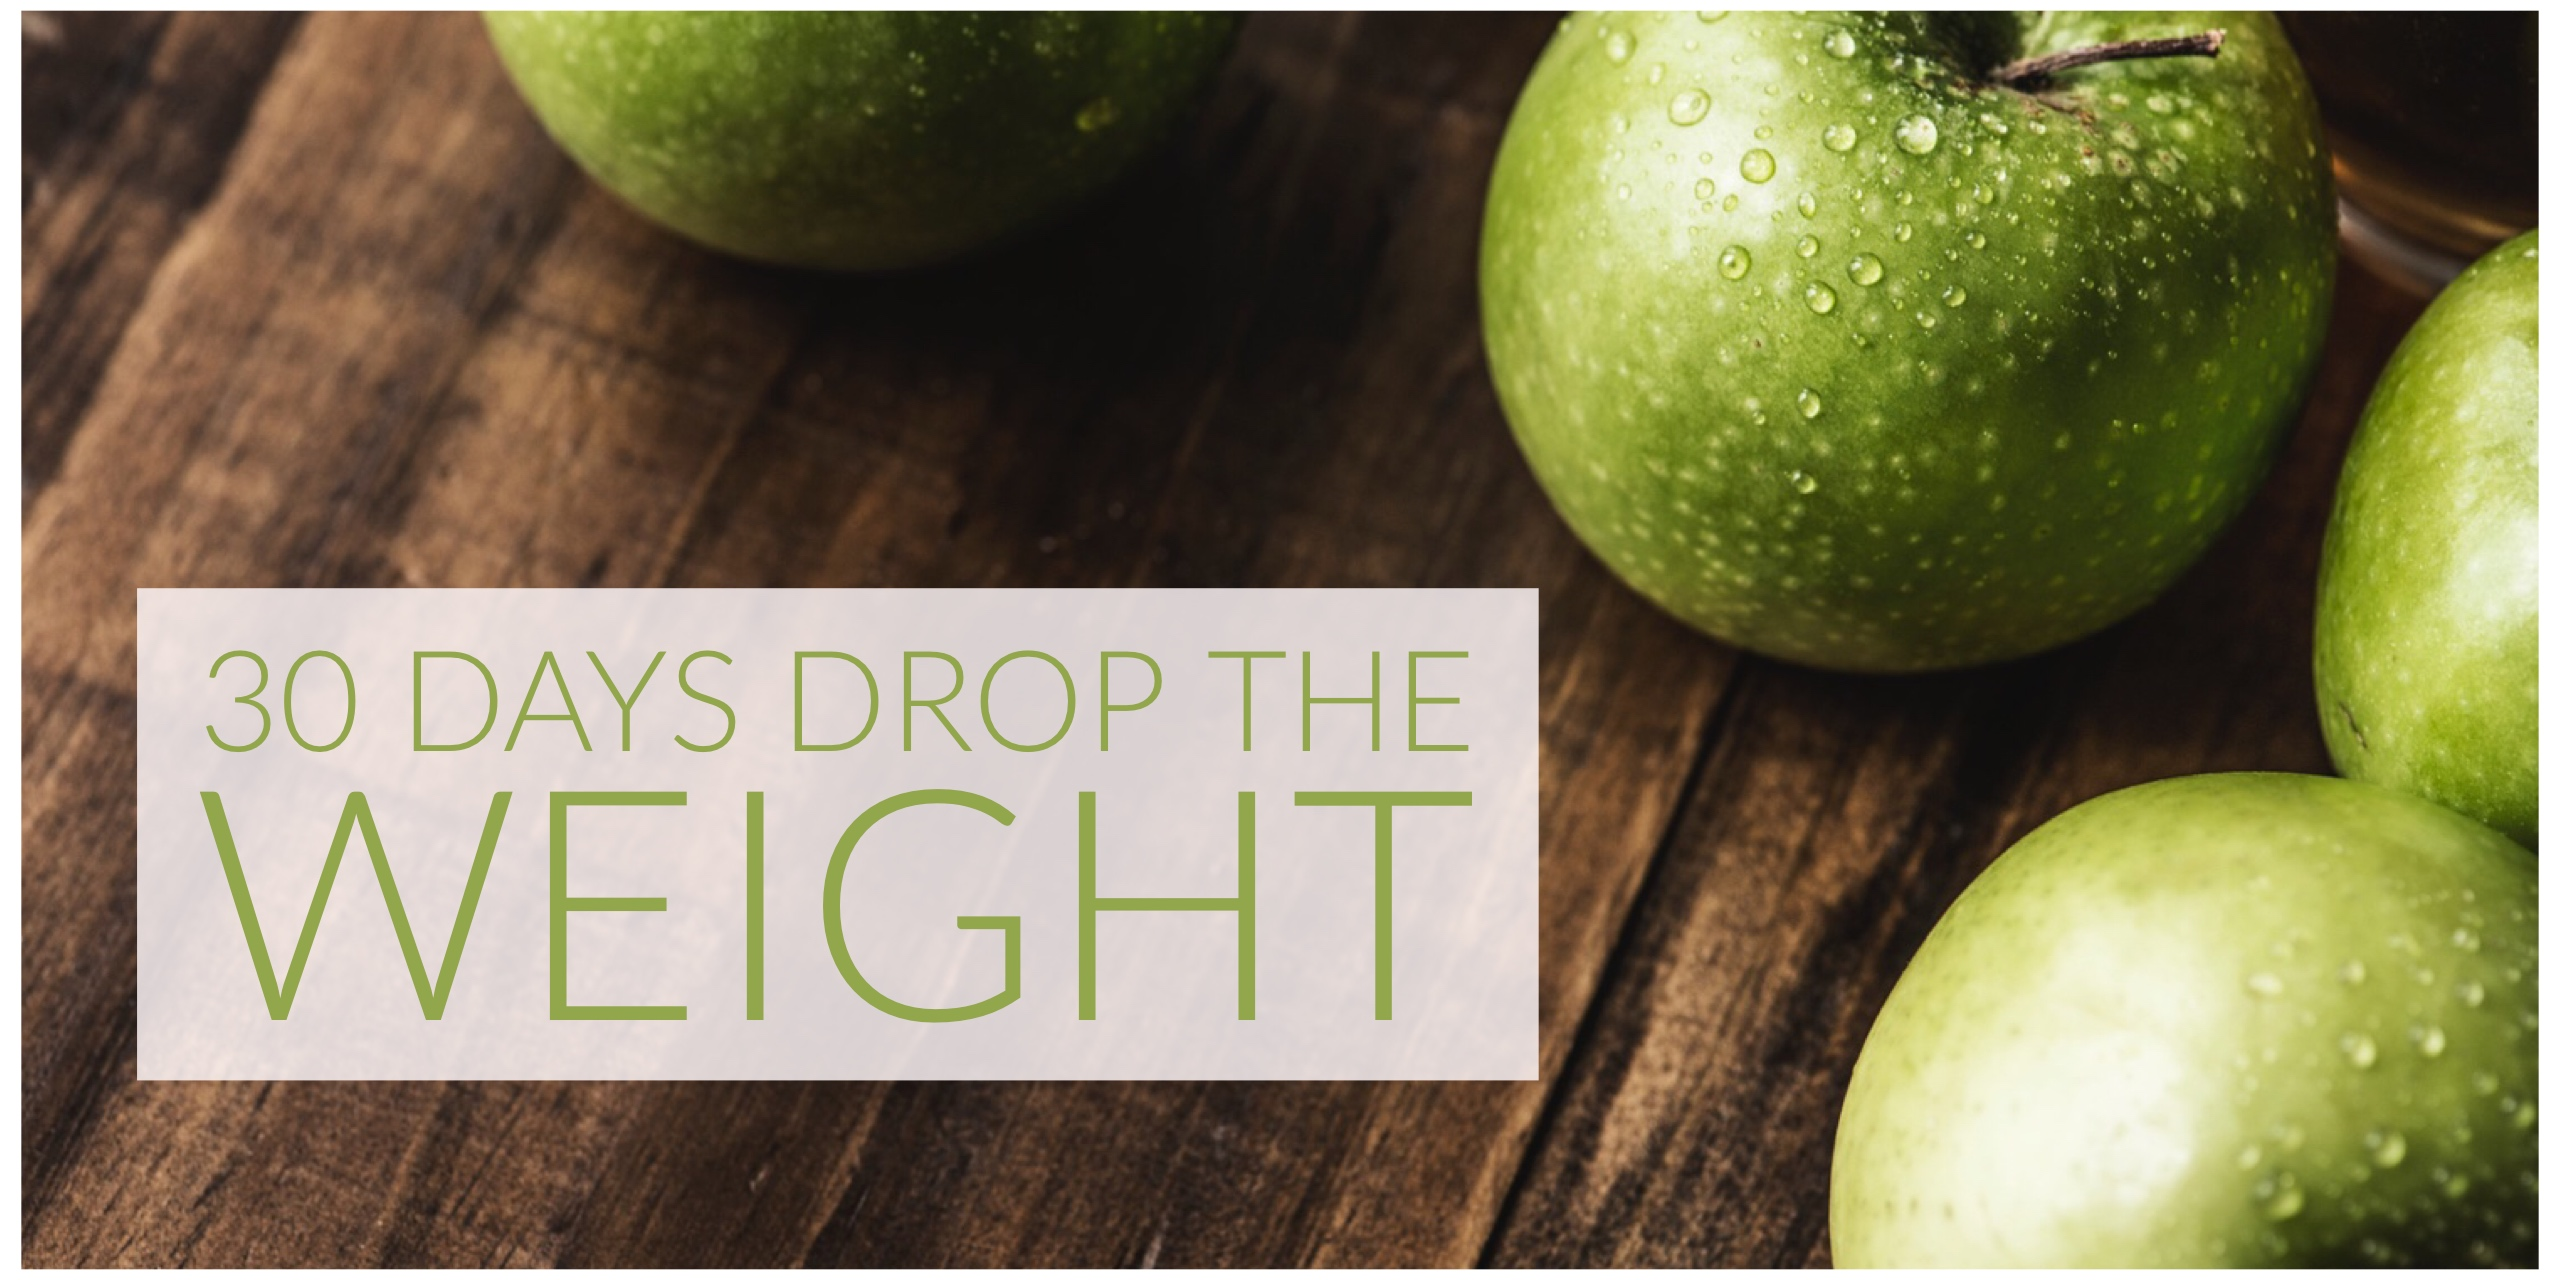 drop weight in 30 days, hcg weight loss, weight loss, hormone program for weight loss.